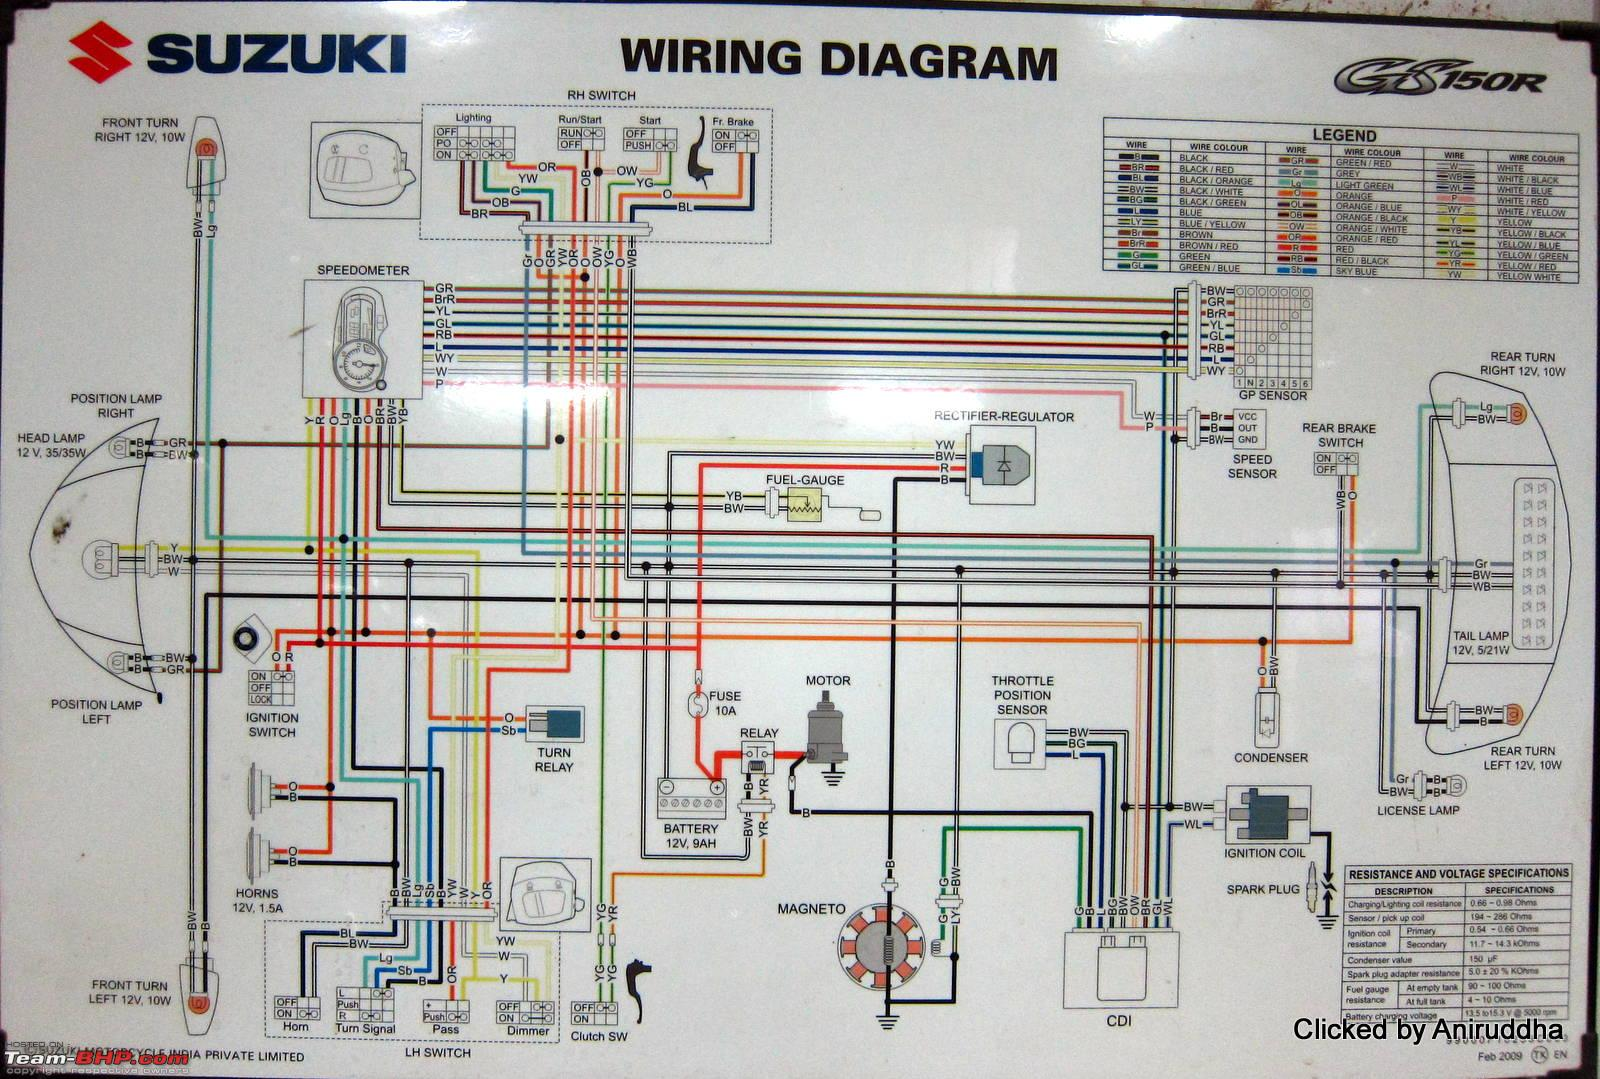 [SCHEMATICS_4FD]  D96 Wiring Diagrams For A Suzuki Carry | Wiring Resources | Wiring Diagram Of Suzuki Multicab |  | Wiring Resources